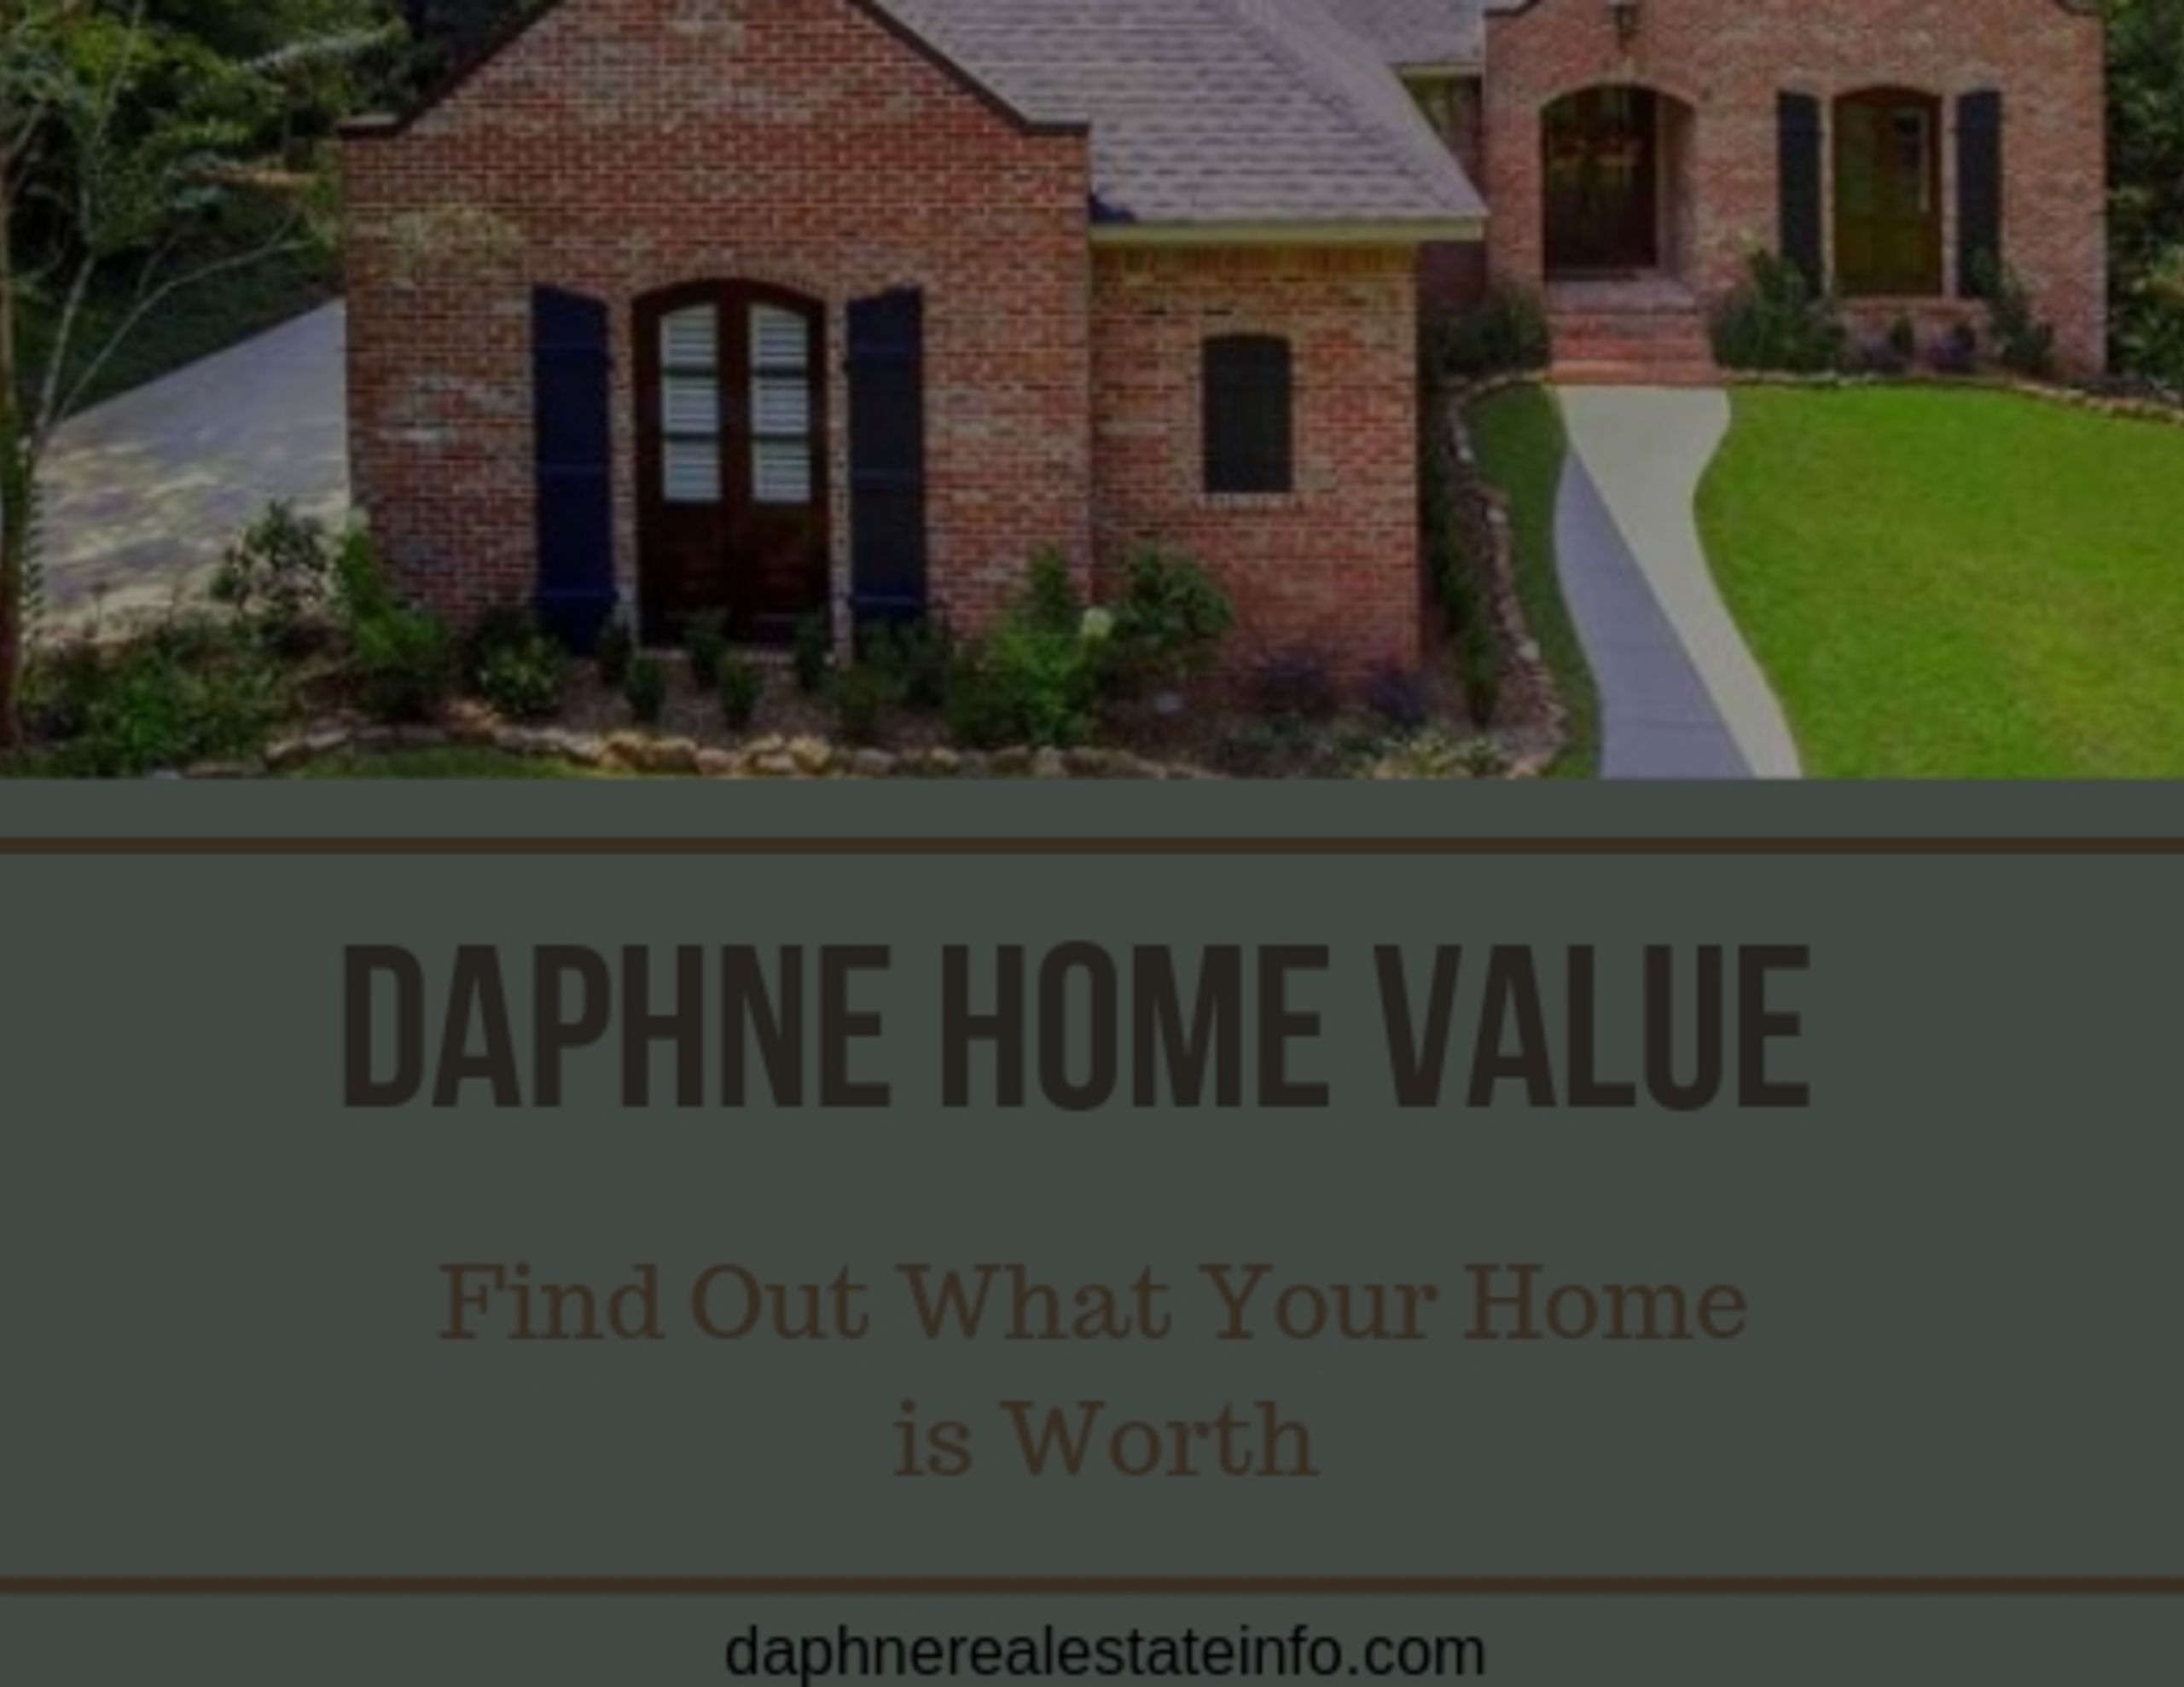 Daphne Home Value